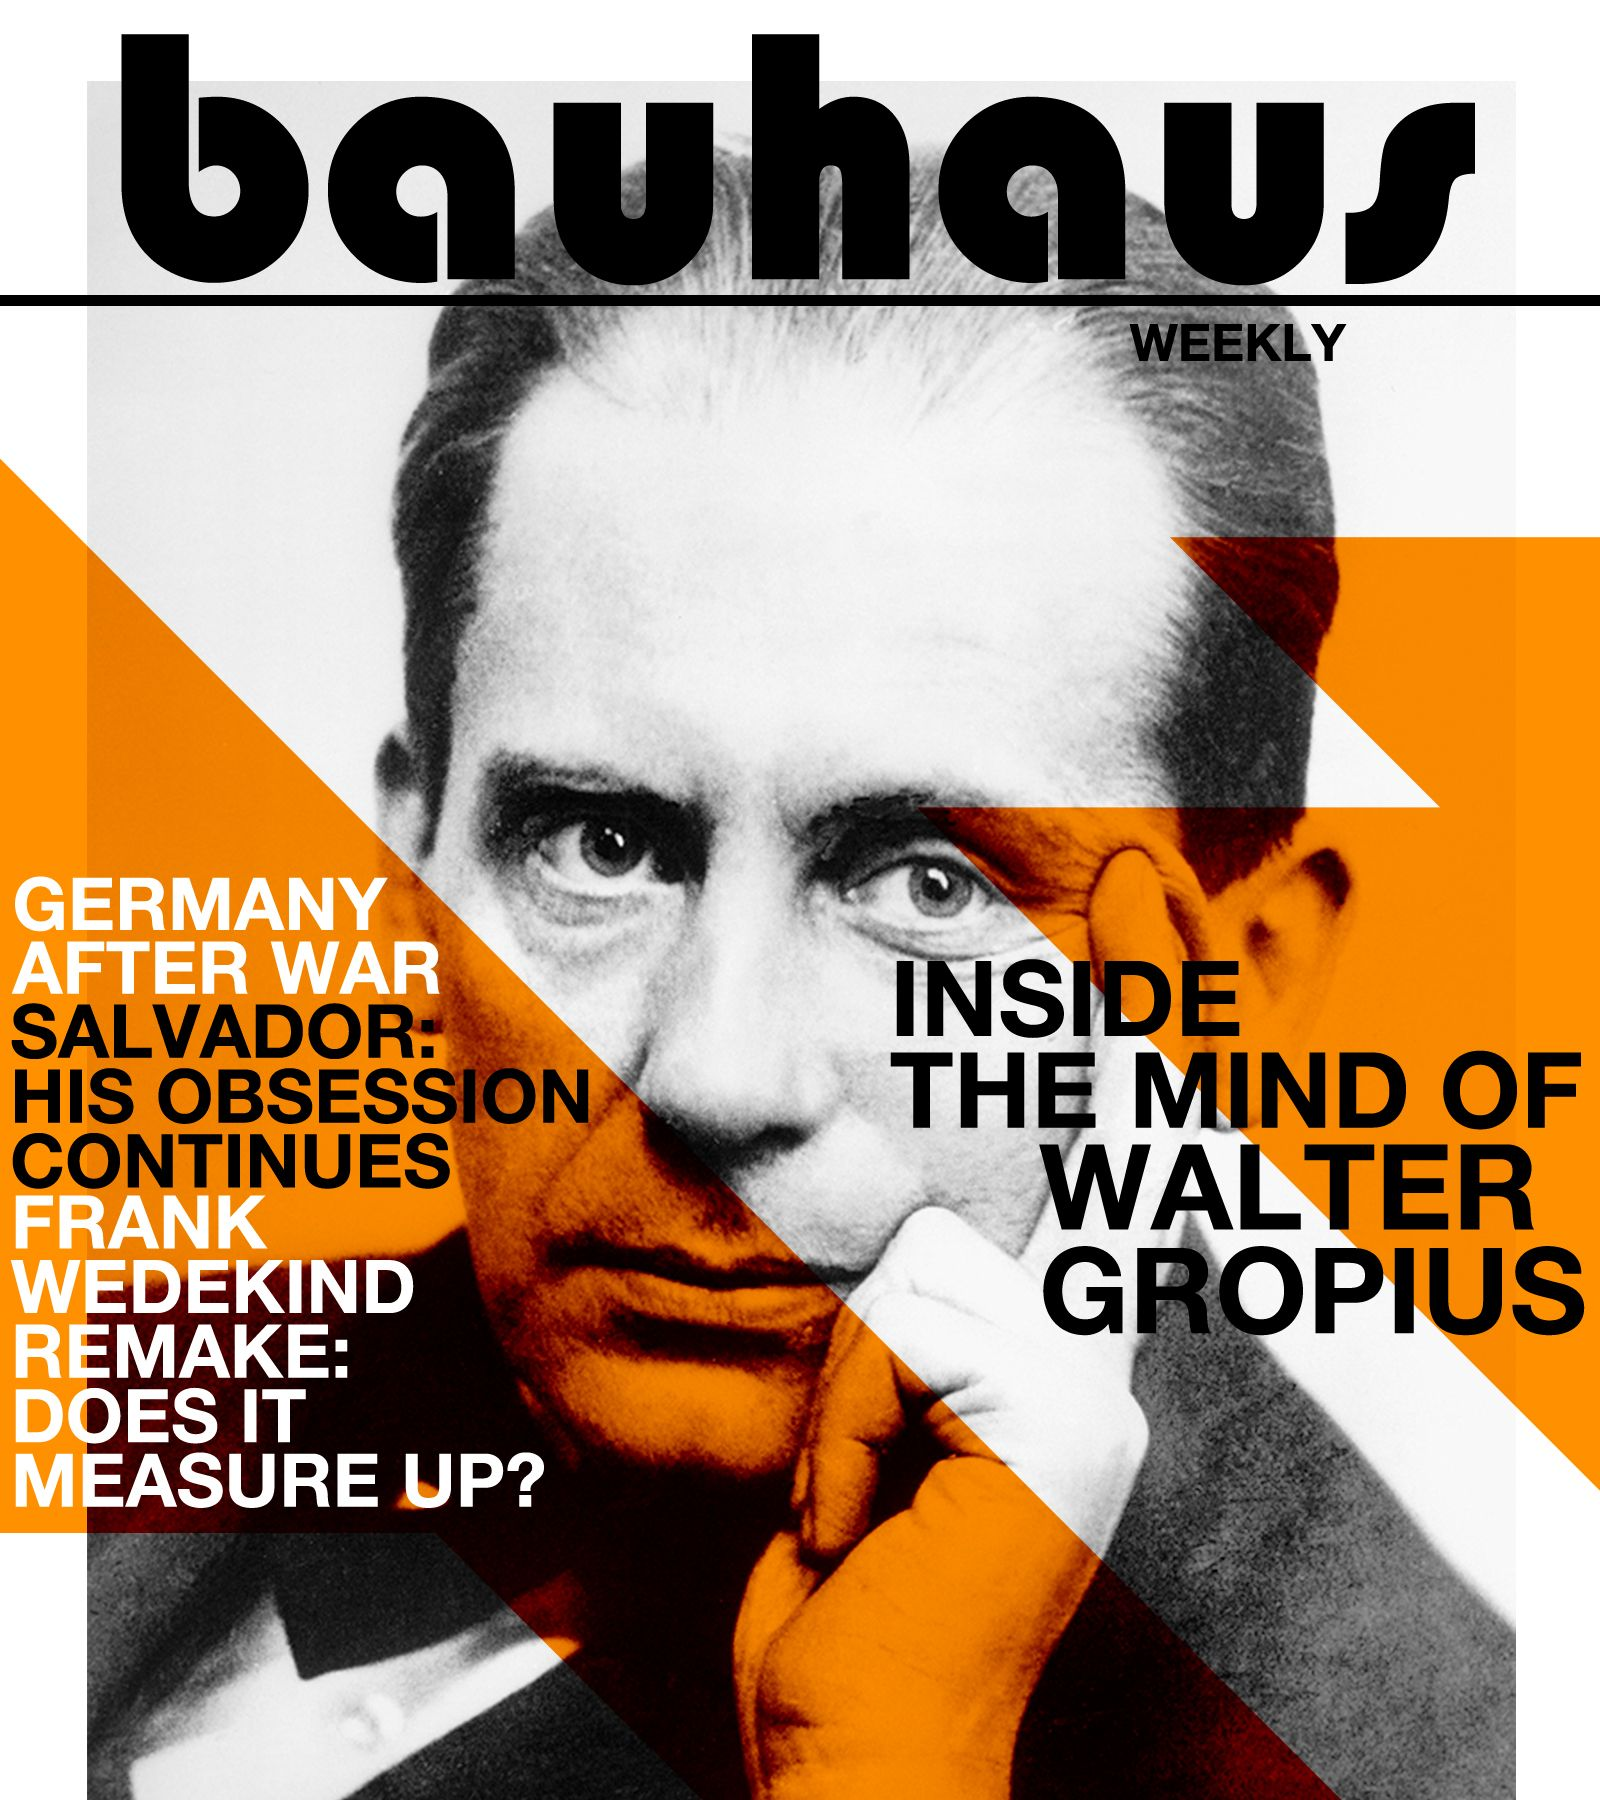 bauhaus editorial - Google 검색